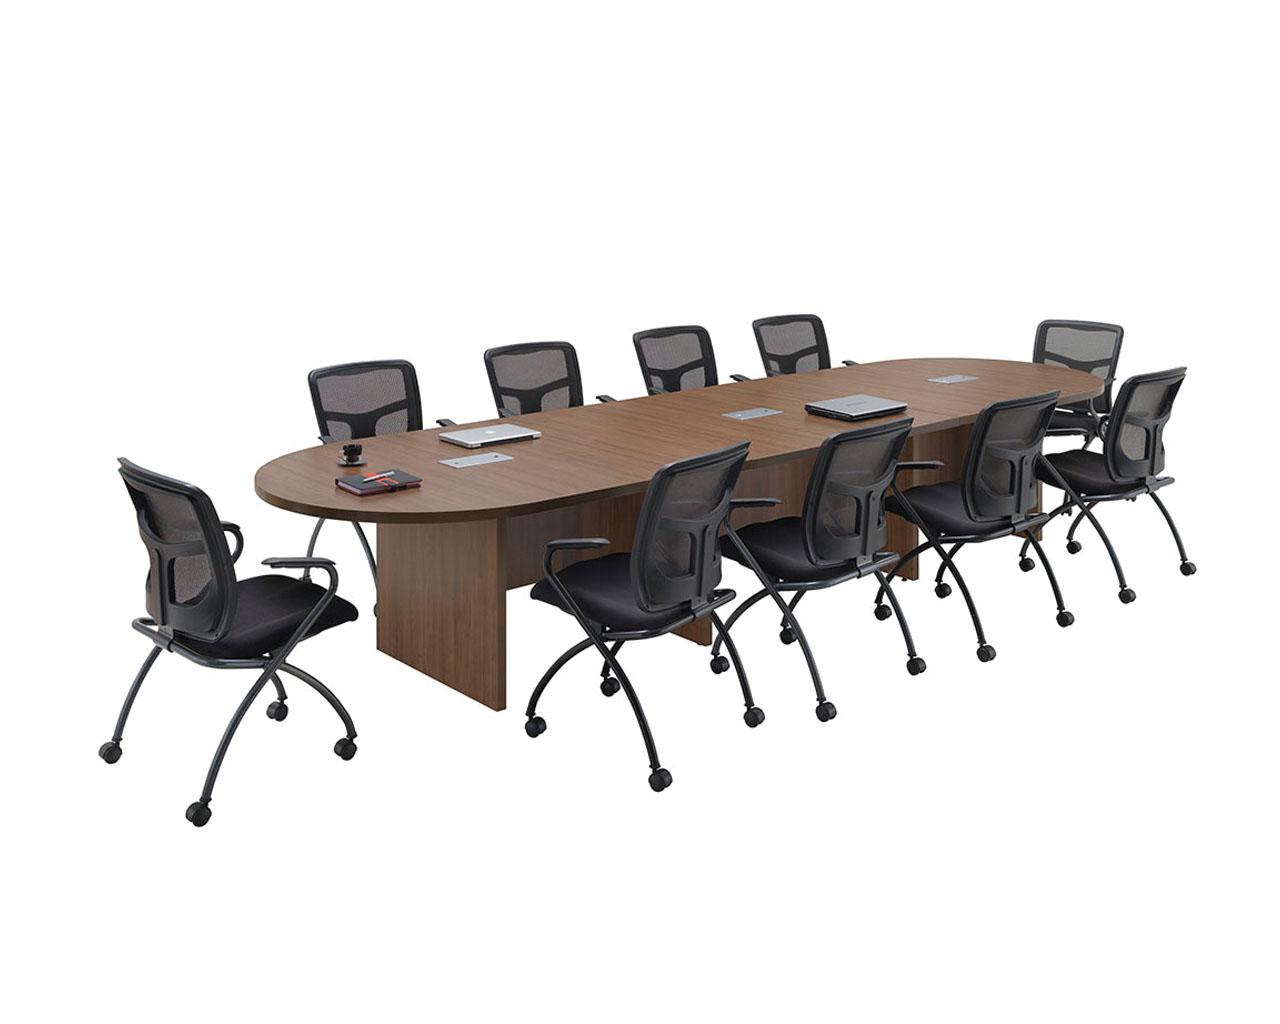 Classic Racetrack Conference Table - Hon racetrack conference table